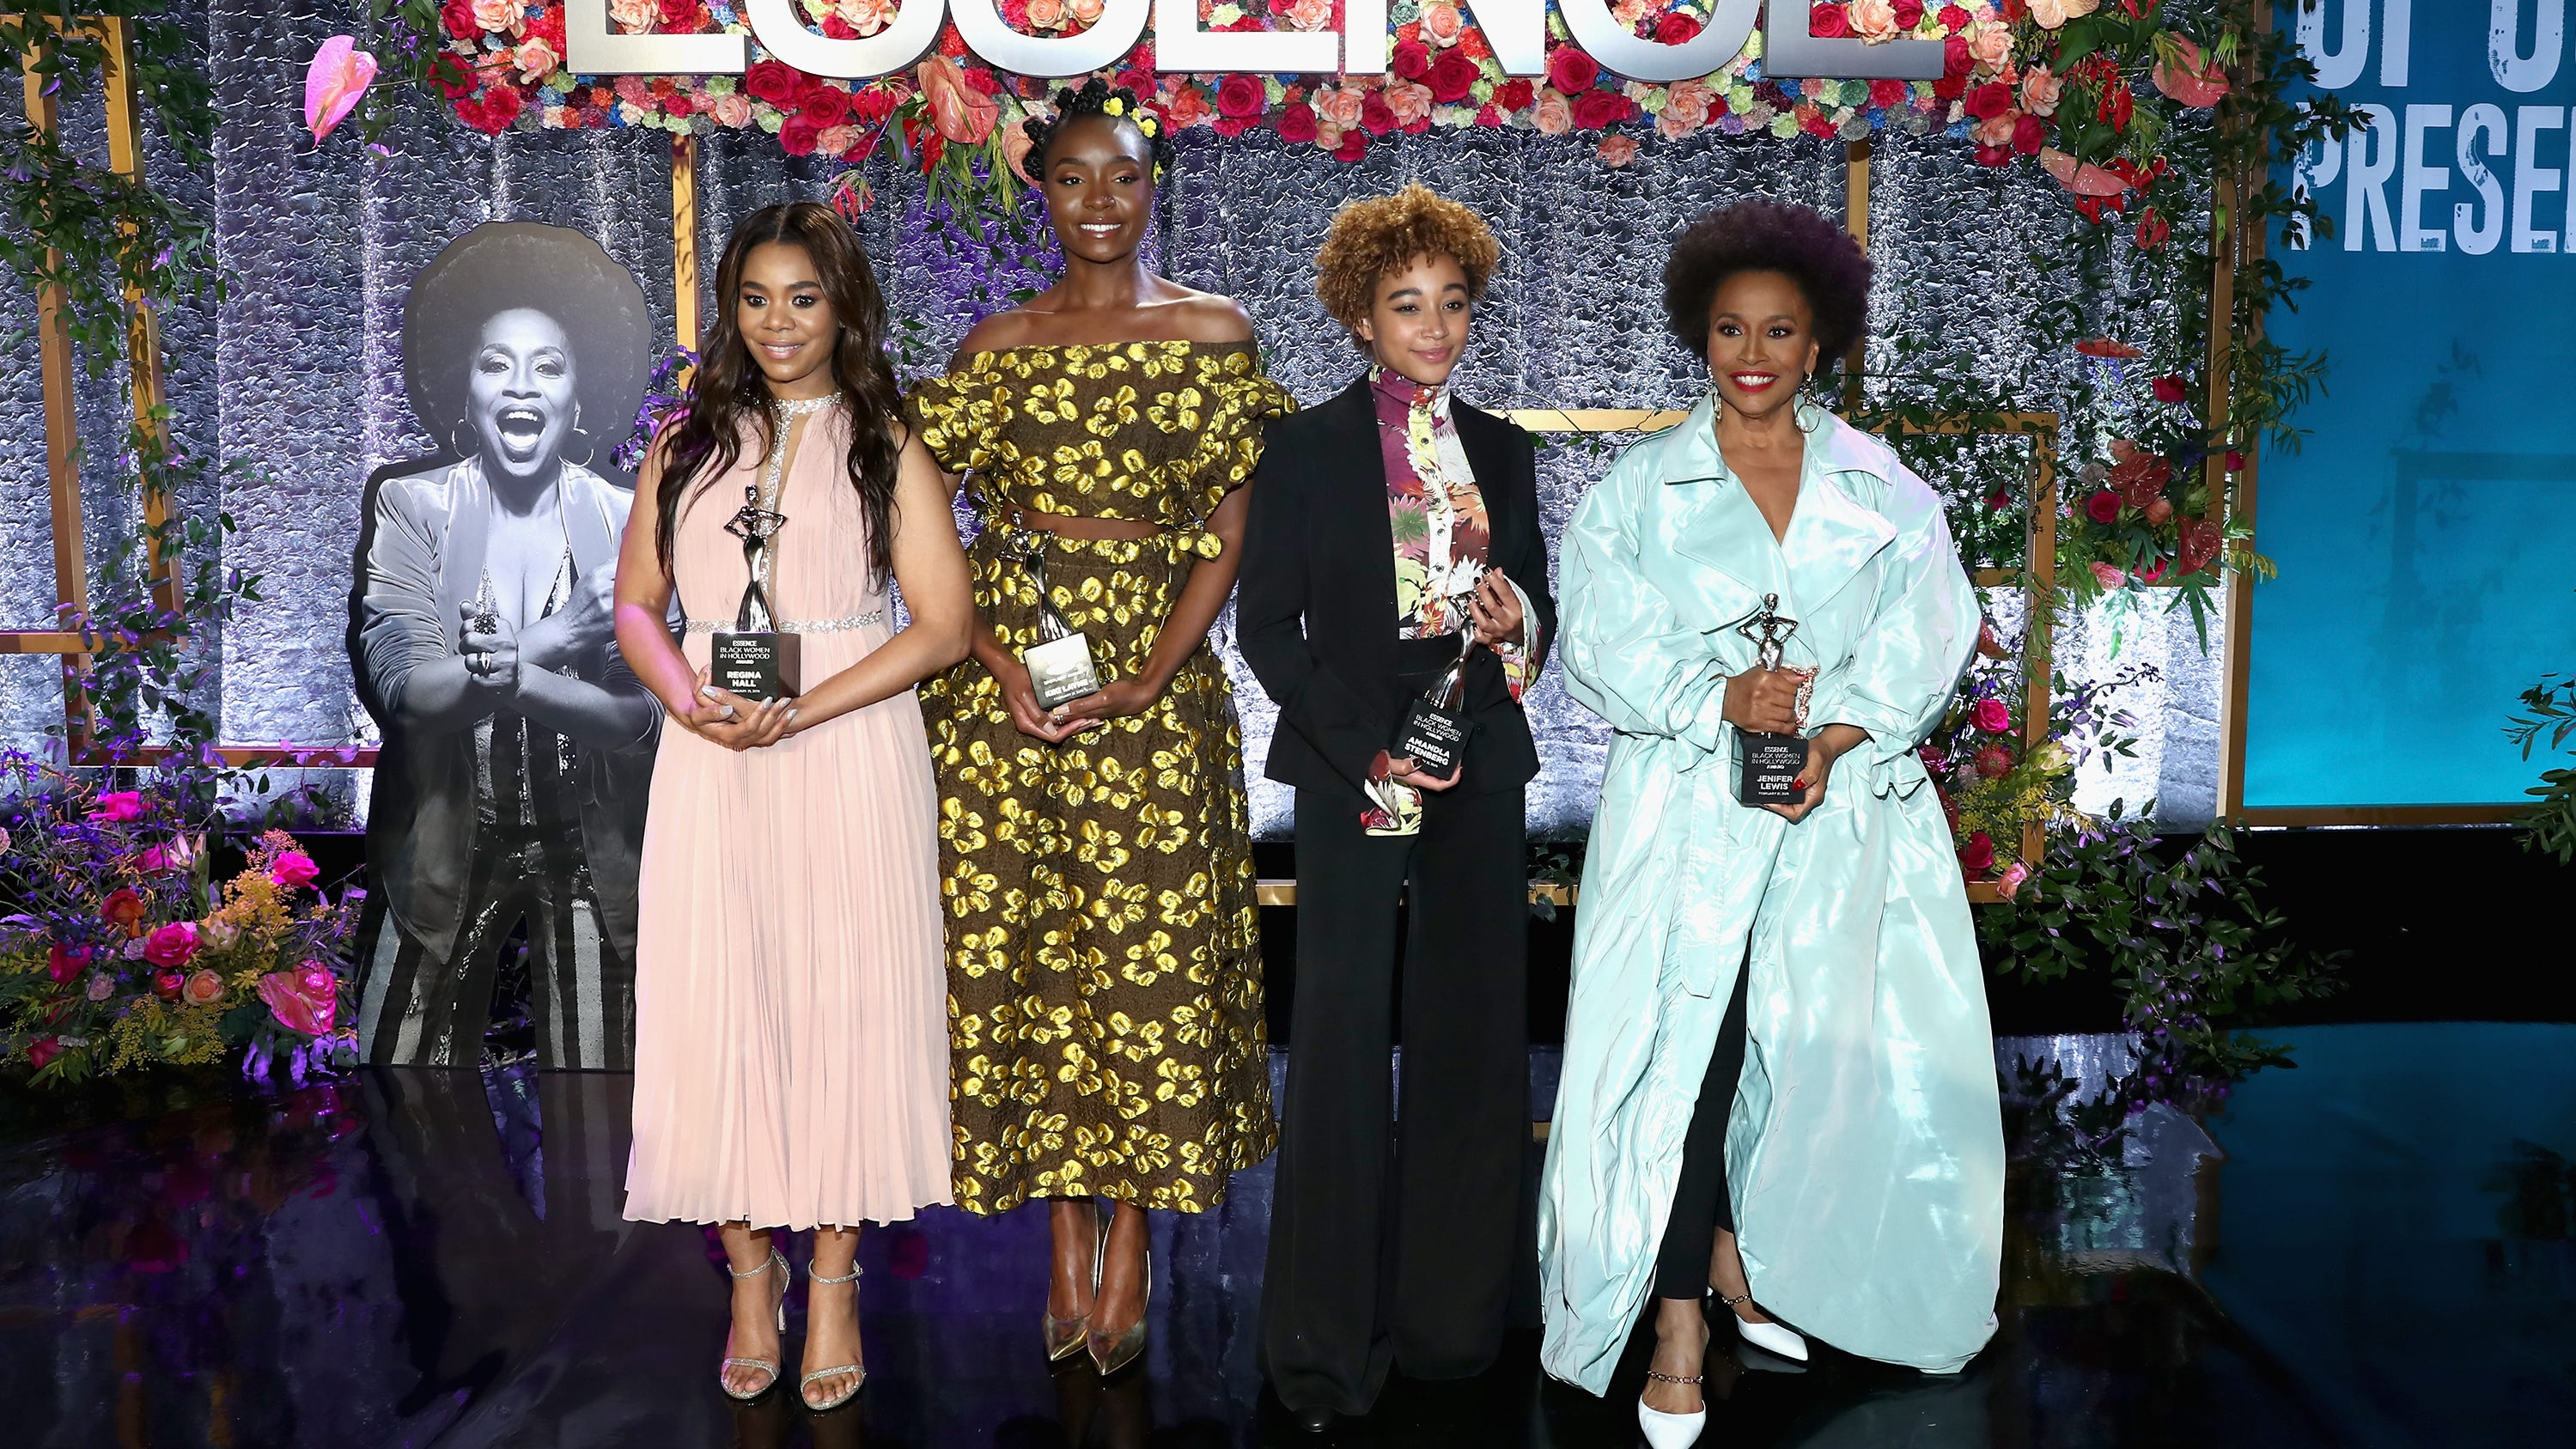 BEVERLY HILLS, CA - FEBRUARY 21: (L-R) Honorees Regina Hall, KiKi Layne, Amandla Stenberg, and Jenifer Lewis attend the 2019 Essence Black Women in Hollywood Awards Luncheon at Regent Beverly Wilshire Hotel on February 21, 2019 in Los Angeles, California. (Photo by Rich Polk/Getty Images for Essence) ORG XMIT: 775299567 ORIG FILE ID: 1126624649